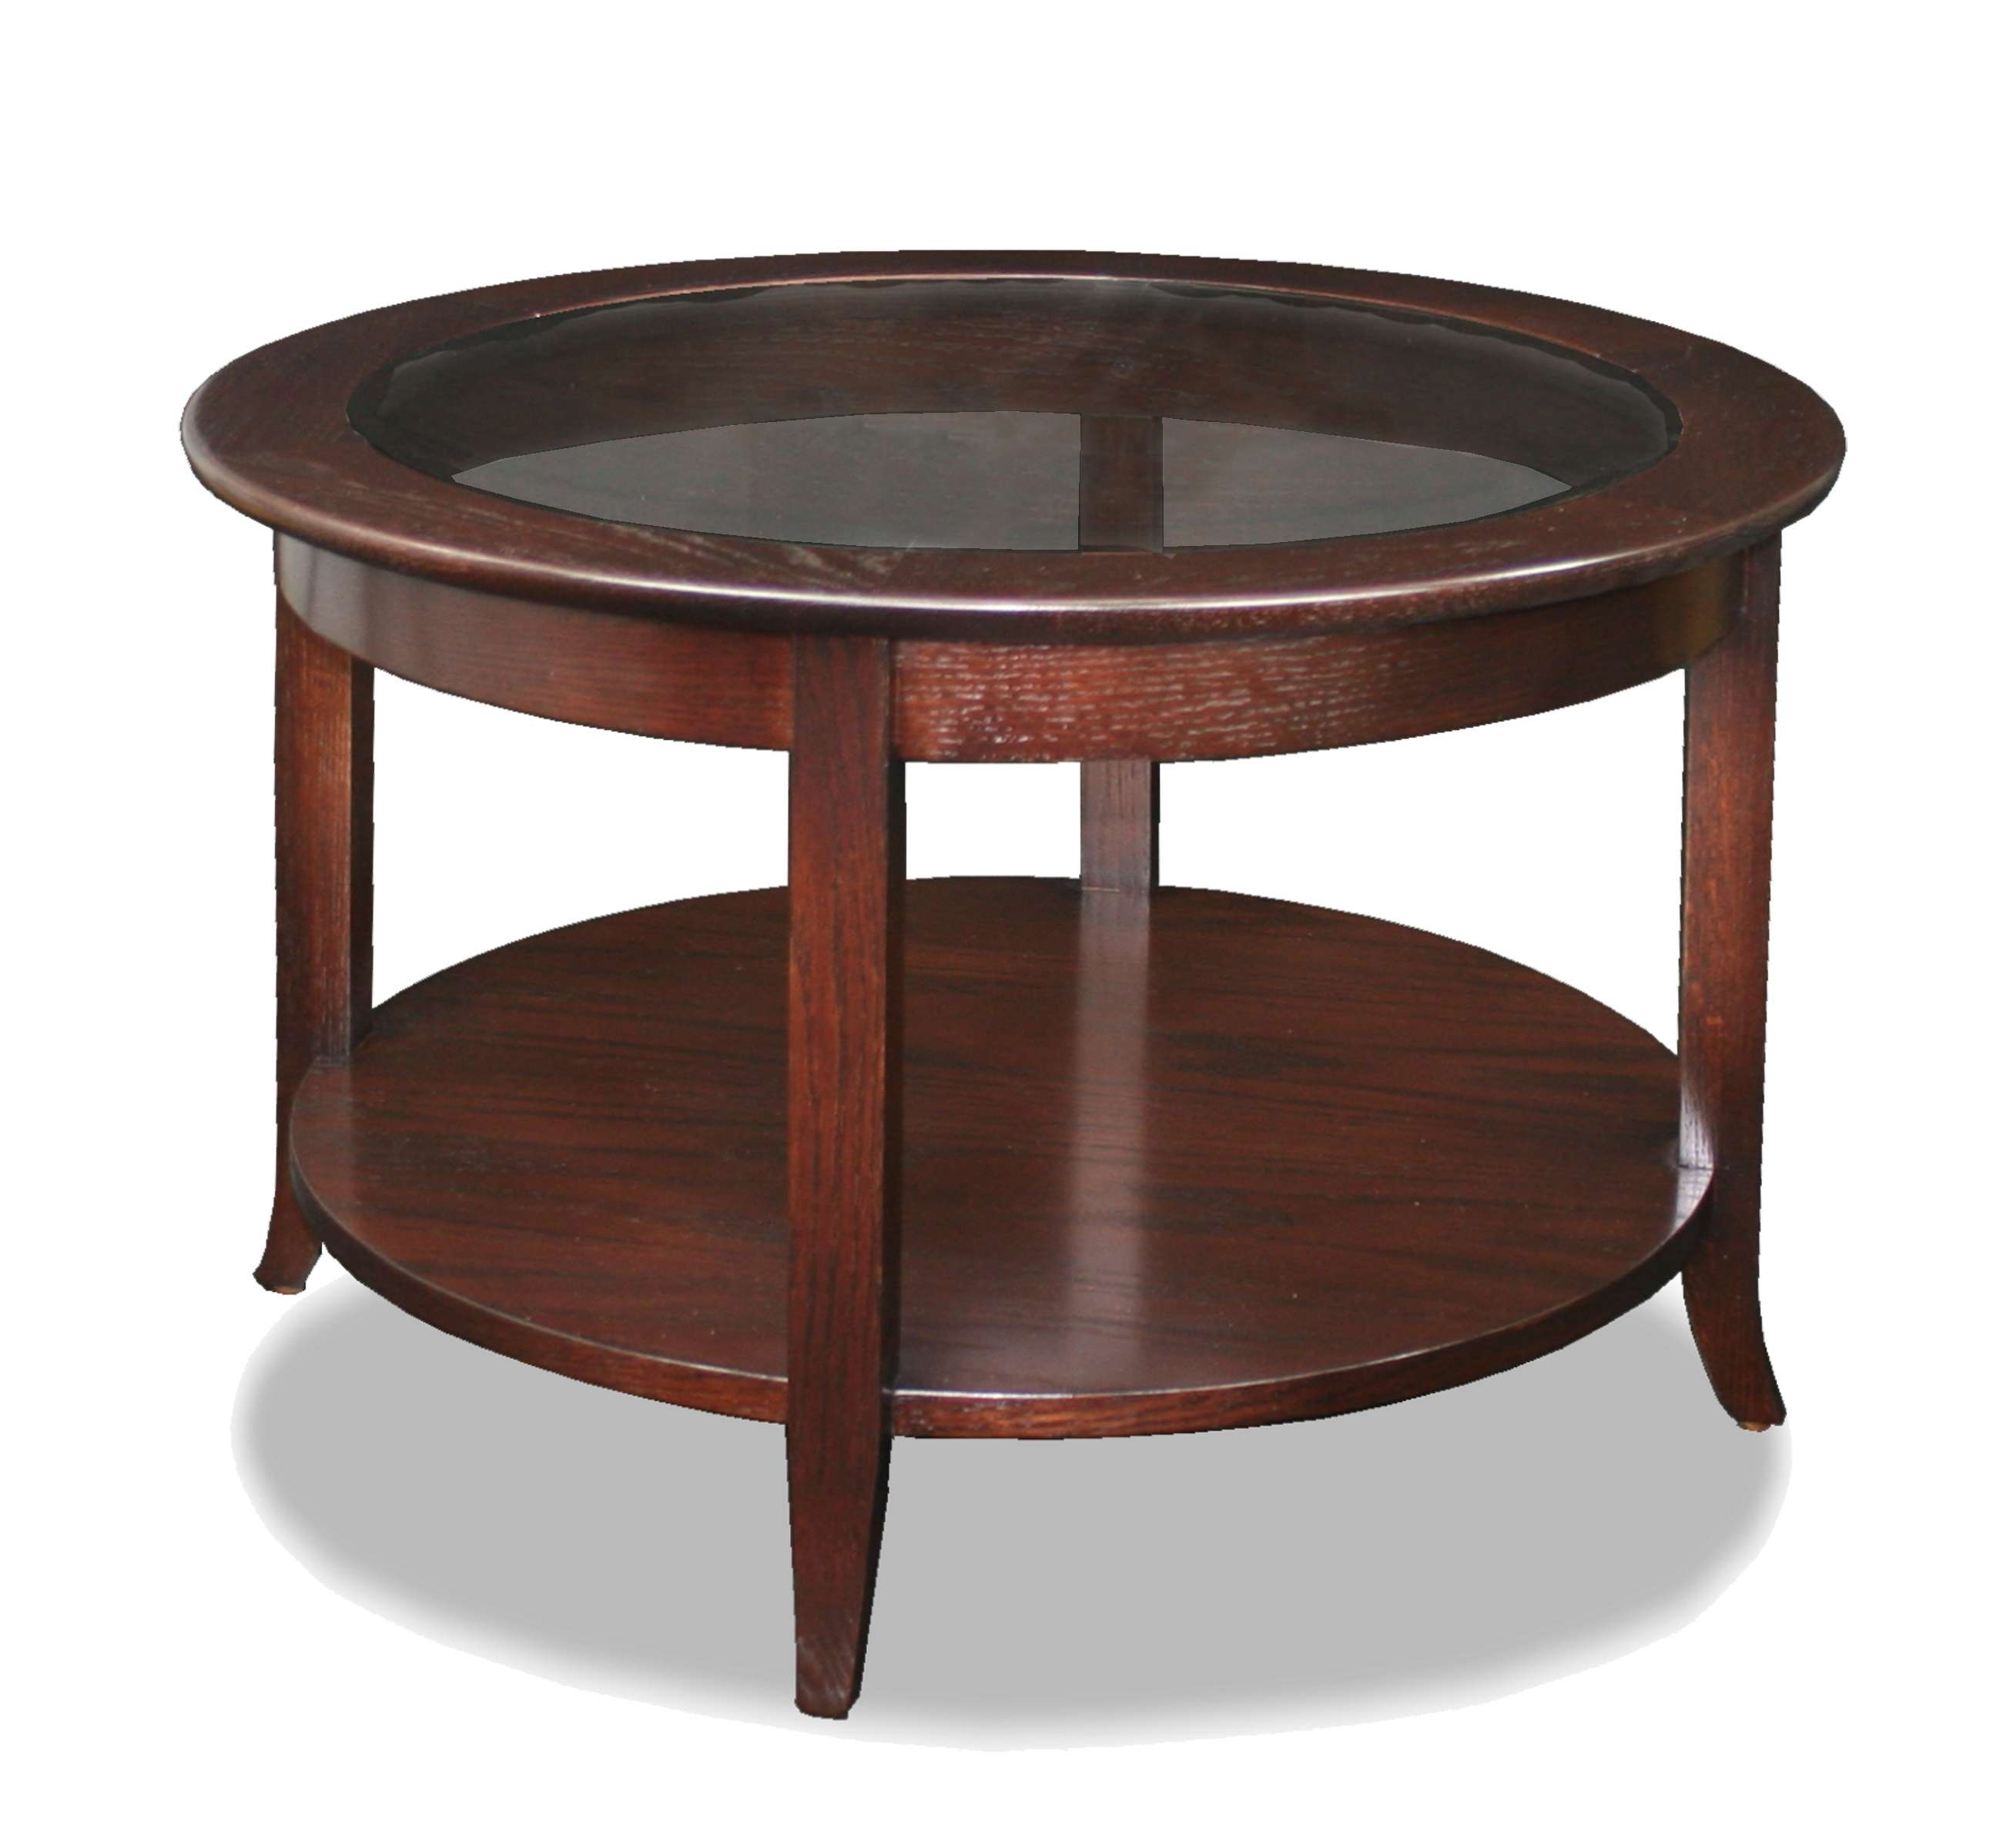 Fascinating Round Wood Coffee Table For Home Coffee Bar – Midcityeast Regarding Current Round Glass And Wood Coffee Tables (View 7 of 20)